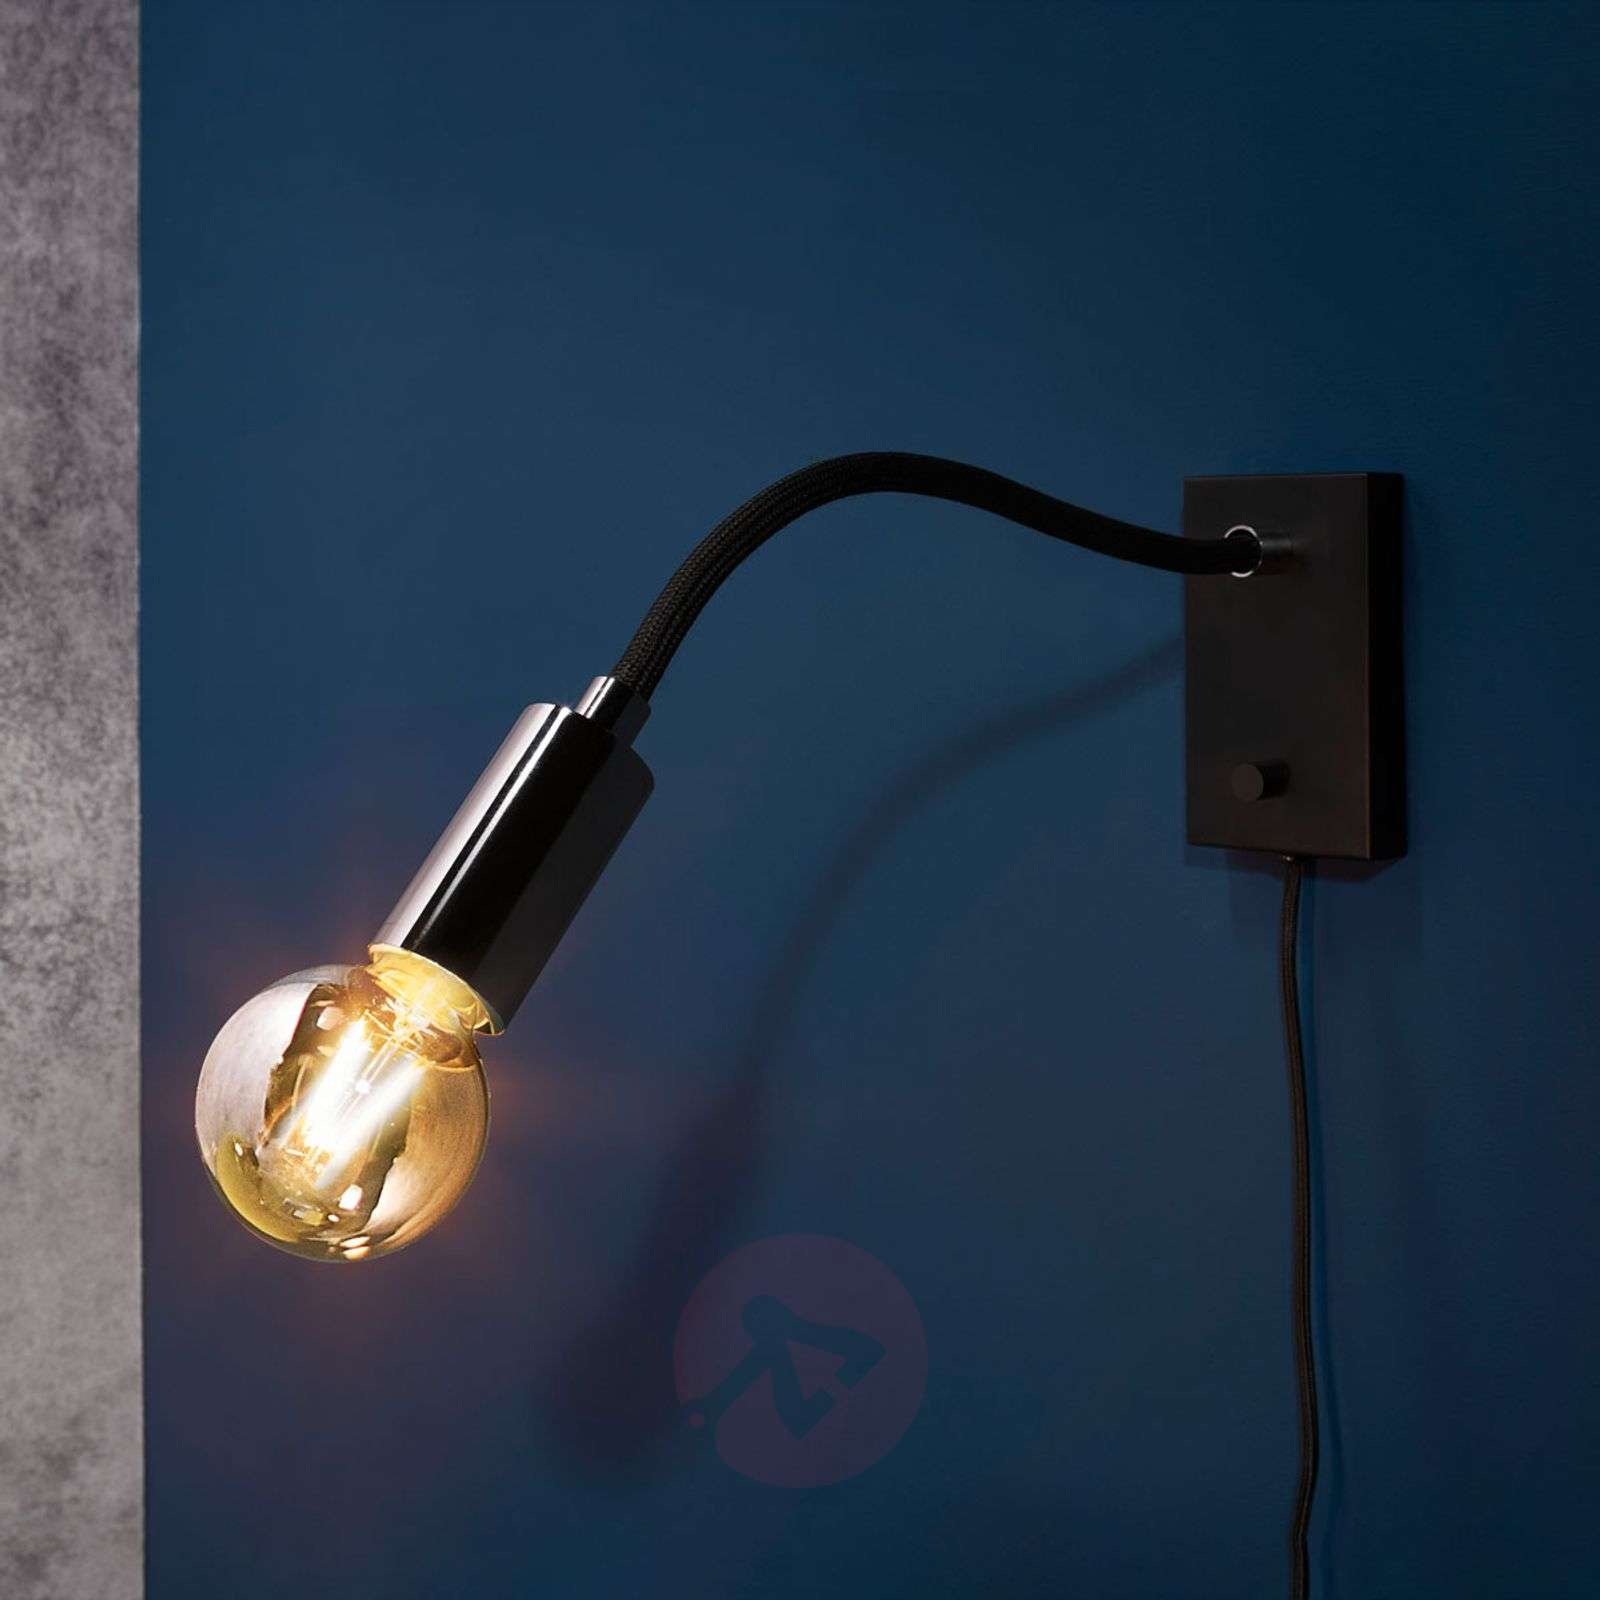 Wall light raw with integrated dimmer lights wall light raw with integrated dimmer 6505642 01 aloadofball Image collections